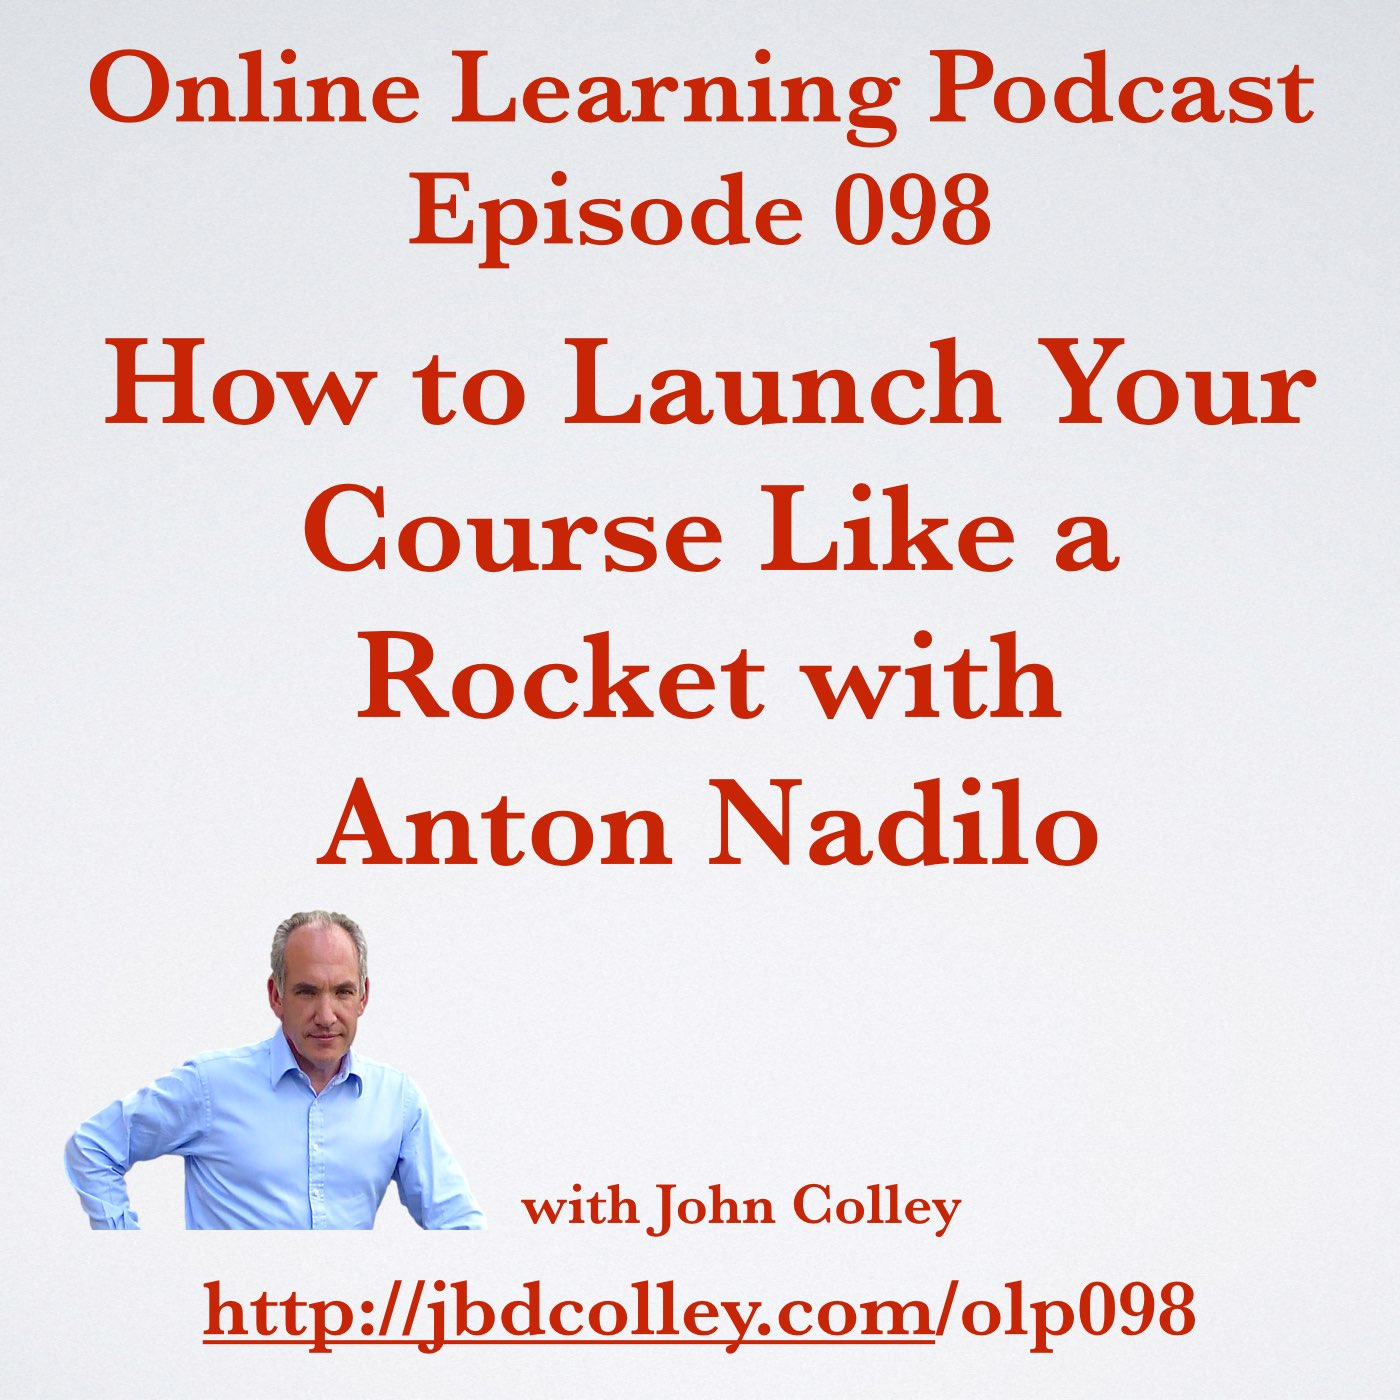 OLP098 How to Launch Your Course Like a Rocket with Anton Nadilo